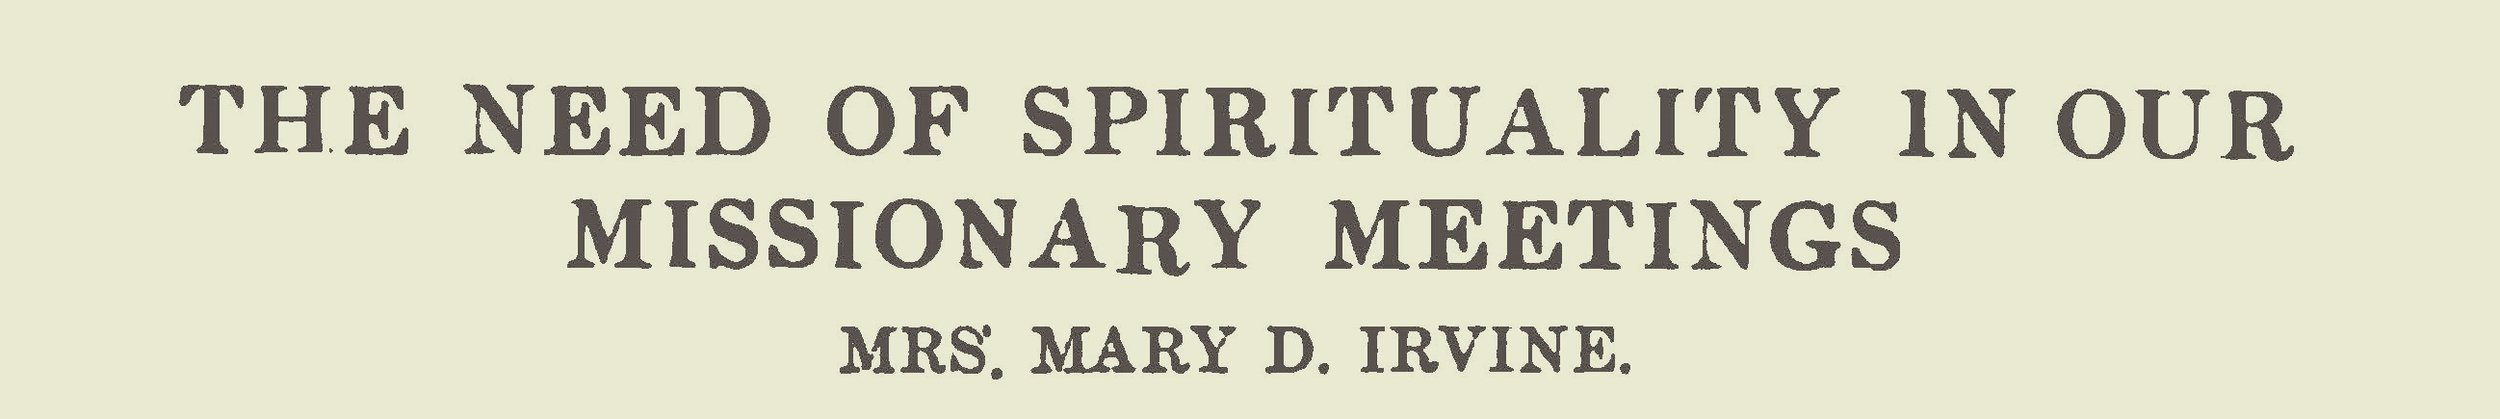 Irvine, Mary Davis, The Need of Spirituality in Our Missionary Meetings Title Page.jpg